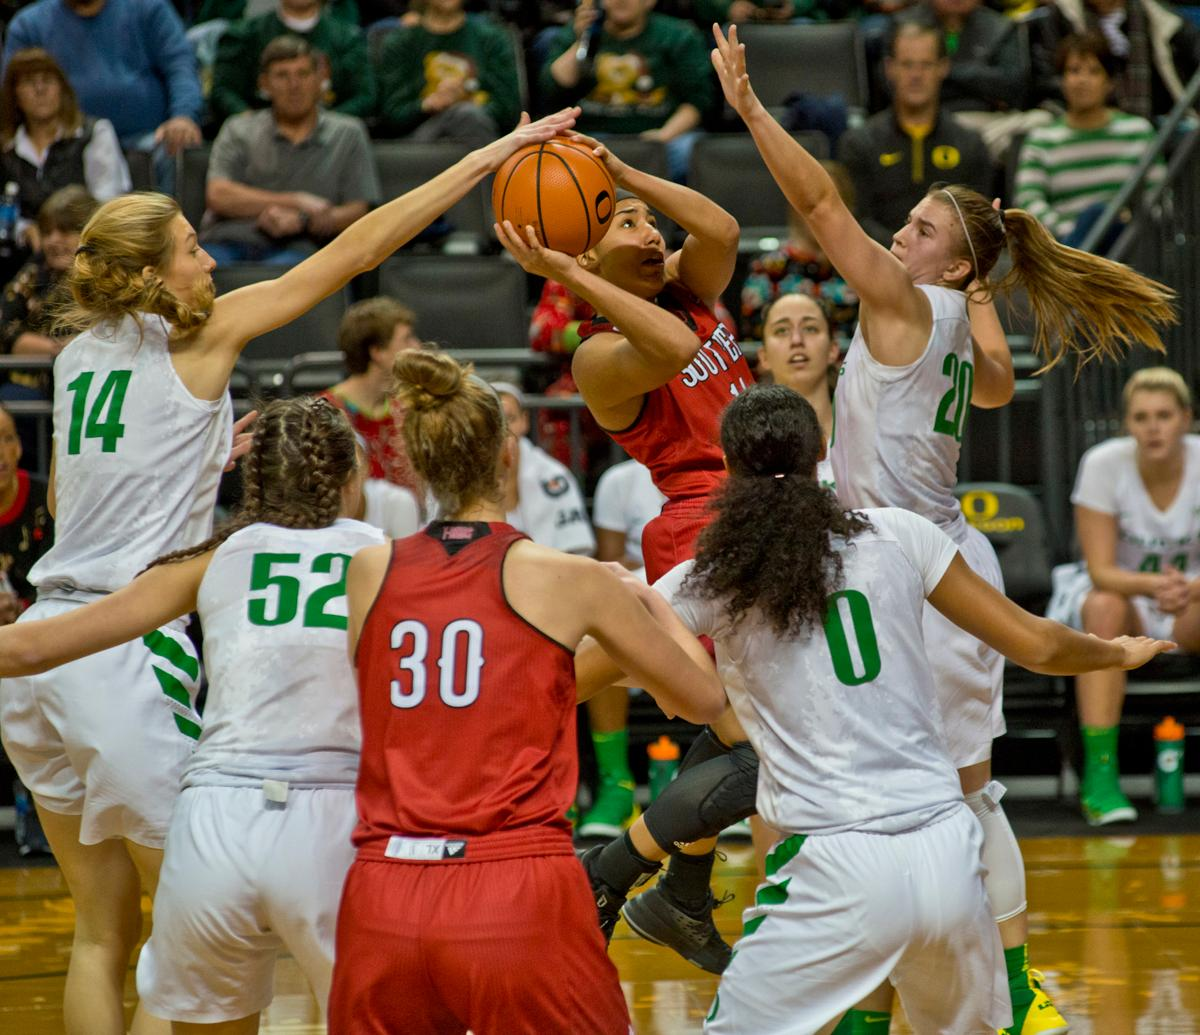 Oregon Ducks Lydia Giomi (#14, white jersey) blocks the shot of Southern Utah Thunderbirds Breanu Reid (#14, red jersey with ball) as the Ducks defense cuts Reid off from the basket. The University of Oregon Ducks women basketball team defeated the Southern Utah Thunderbirds 98-38 in Matthew Knight Arena Saturday afternoon. The Ducks had four players in double-digits: Ruthy Hebard with 13; Mallory McGwire with 10; Lexi Bando with 17 which included four three-pointers; and Sabrina Ionescu with 16 points. The Ducks overwhelmed the Thunderbirds, shooting 50% in field goals to South Utah's 26.8%, 53.8% in three-pointers to 12.5%, and 85.7% in free throws to 50%. The Ducks, with an overall record of 8-1, and coming into this game ranked 9th, will play their next home game against Ole Miss on December 17. Photo by Dan Morrison, Oregon News Lab